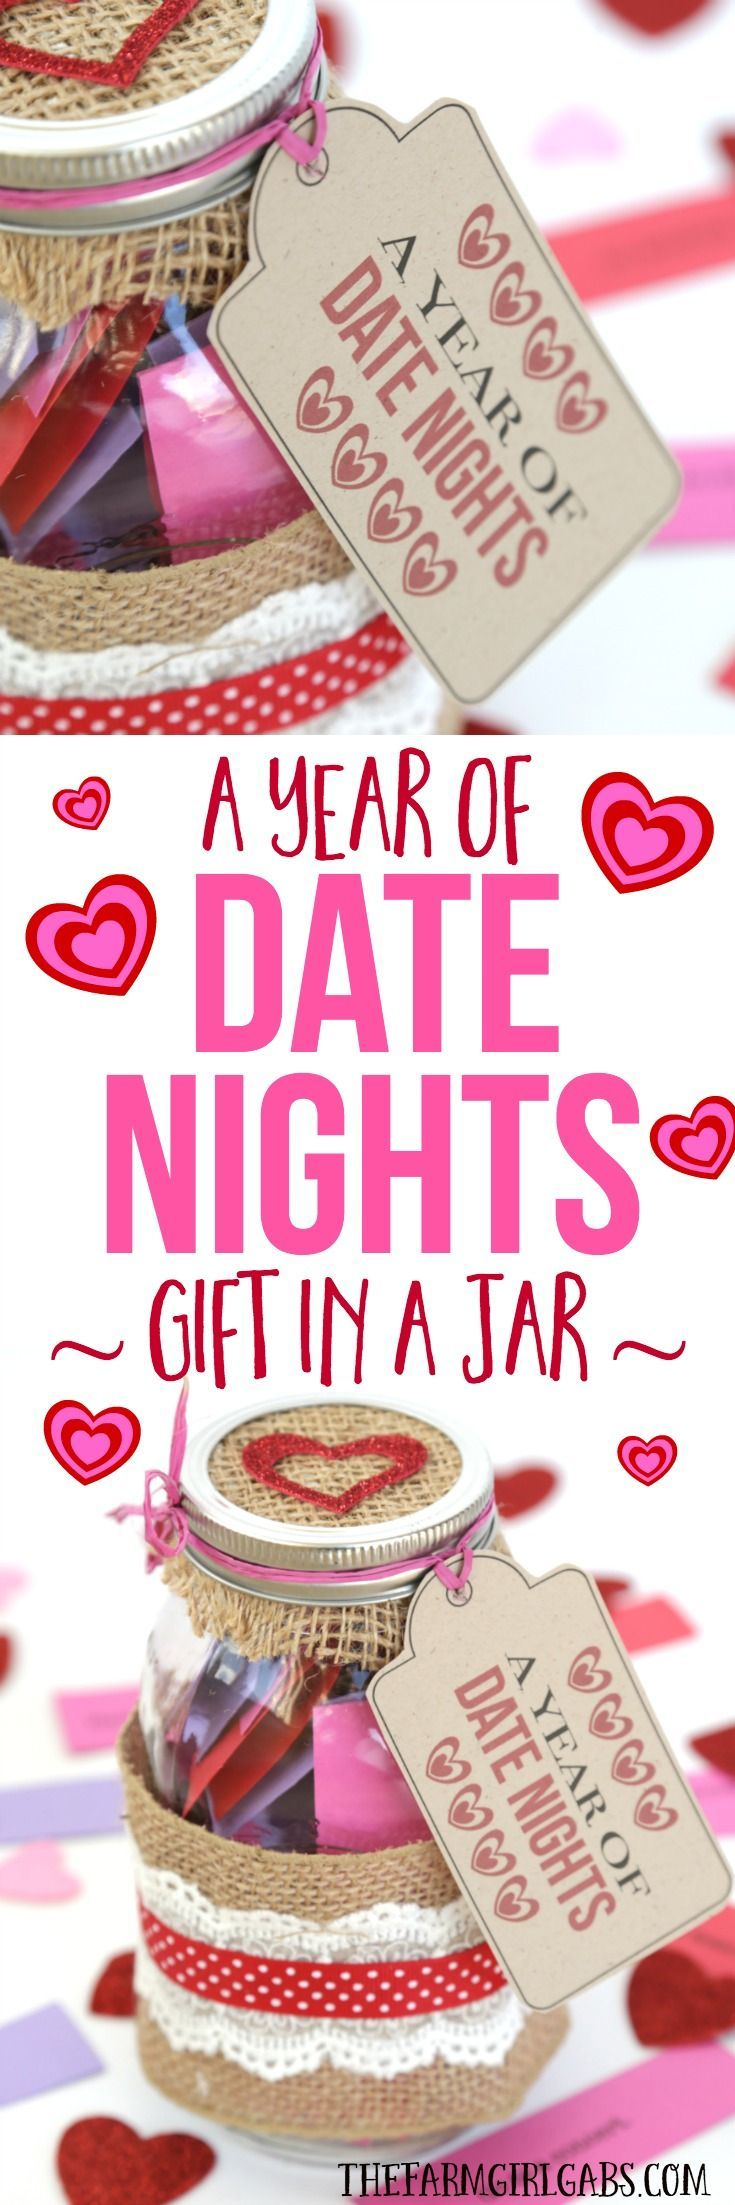 Looking for a fun gift idea to give to your spouse or partner? This ...